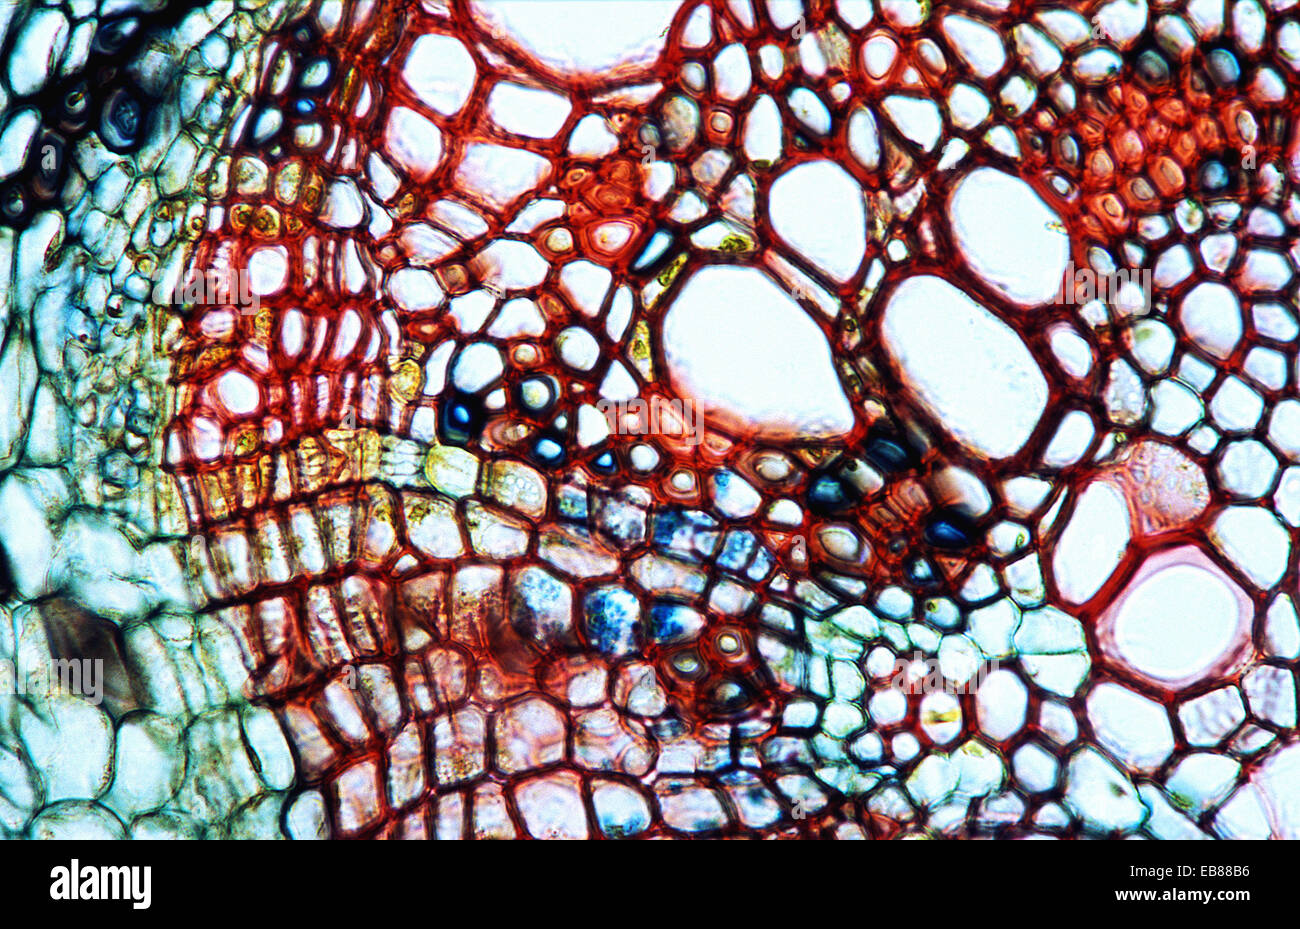 Dicotyledon Root Cross Section Xylem Phloem Pith